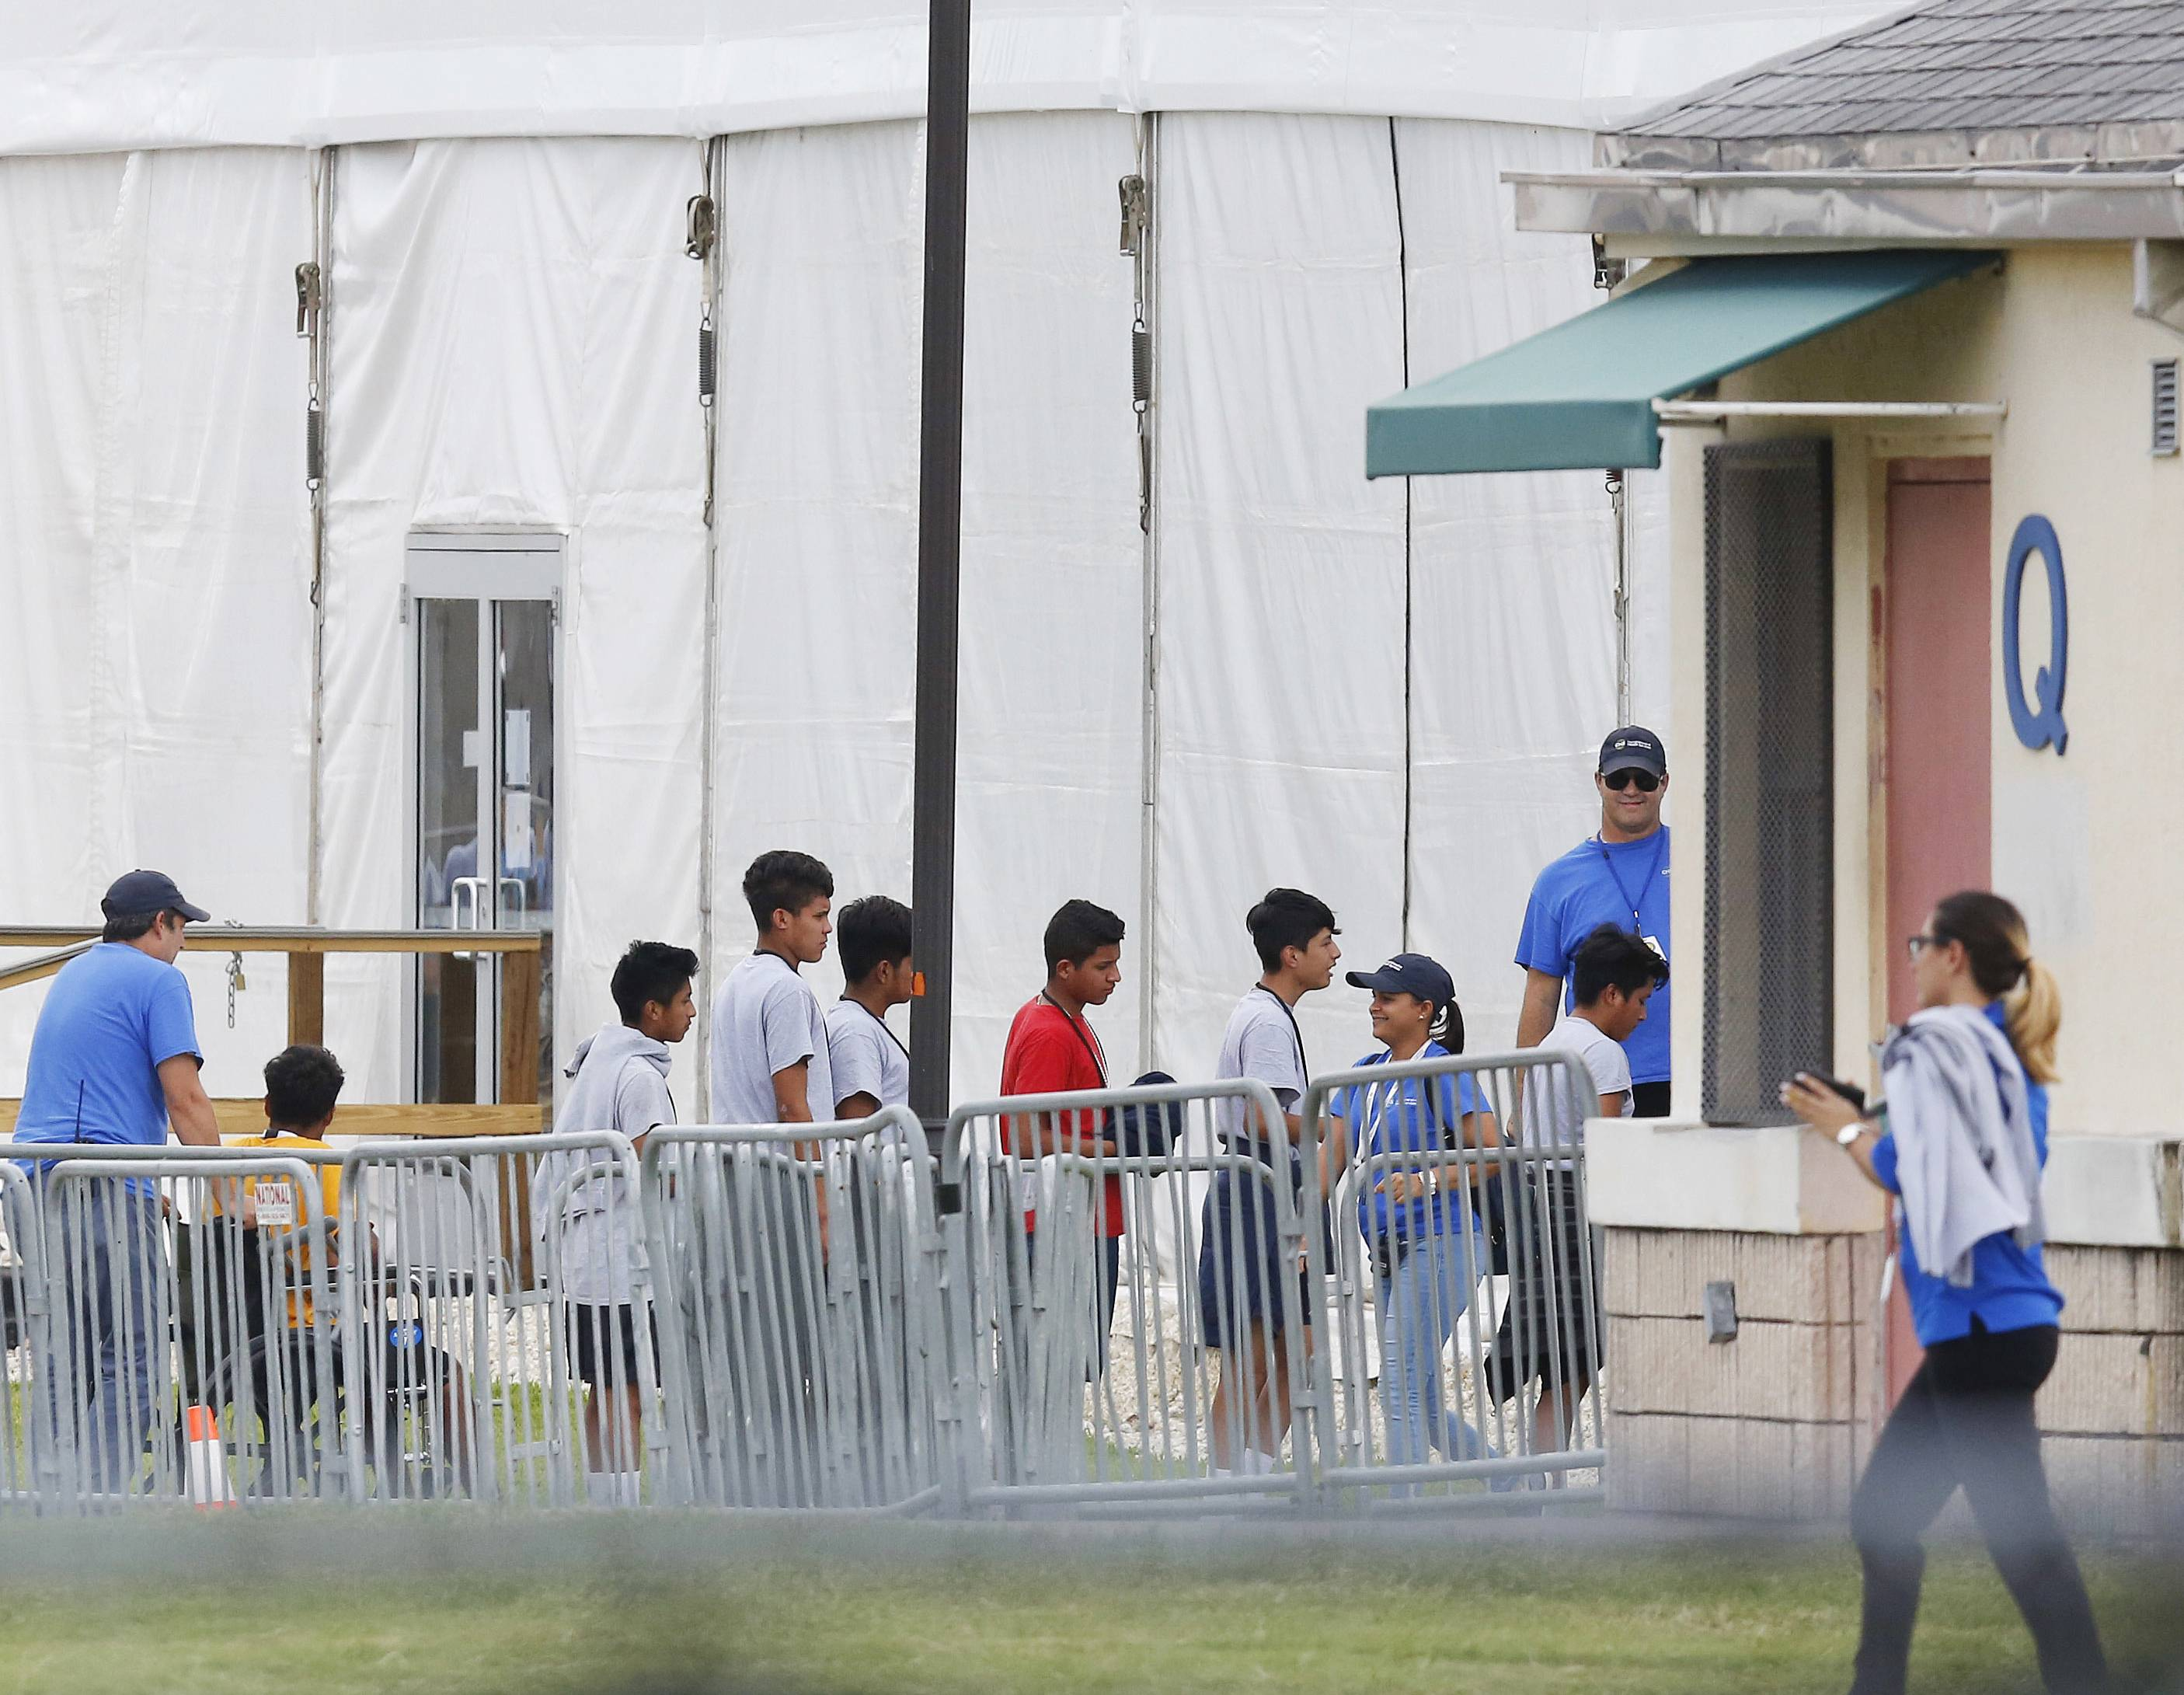 FILE — In this June 20, 2018, file photo, Immigrant children walk in a line outside the Homestead Temporary Shelter for Unaccompanied Children a former Job Corps site that now houses them in Homestead, Fla. A Senate subcommittee has found that federal officials for the second time lost track of nearly 1,500 migrant children earlier this year after a government agency placed the minors in the custody of adult sponsors in communities nationwide.